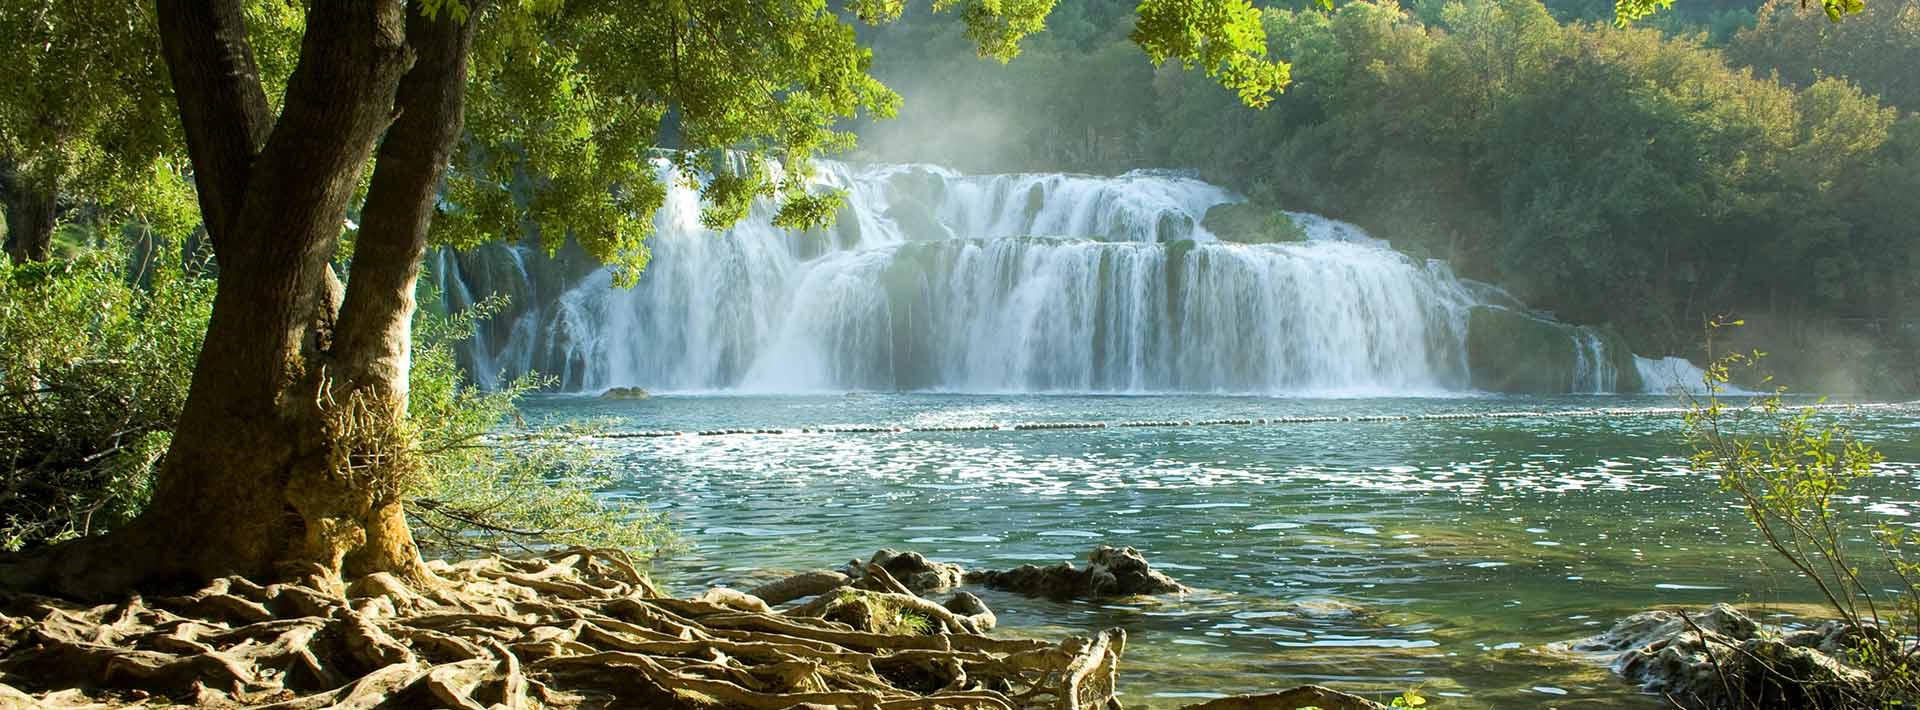 Krka National Park, Skradinski Buk waterfalls